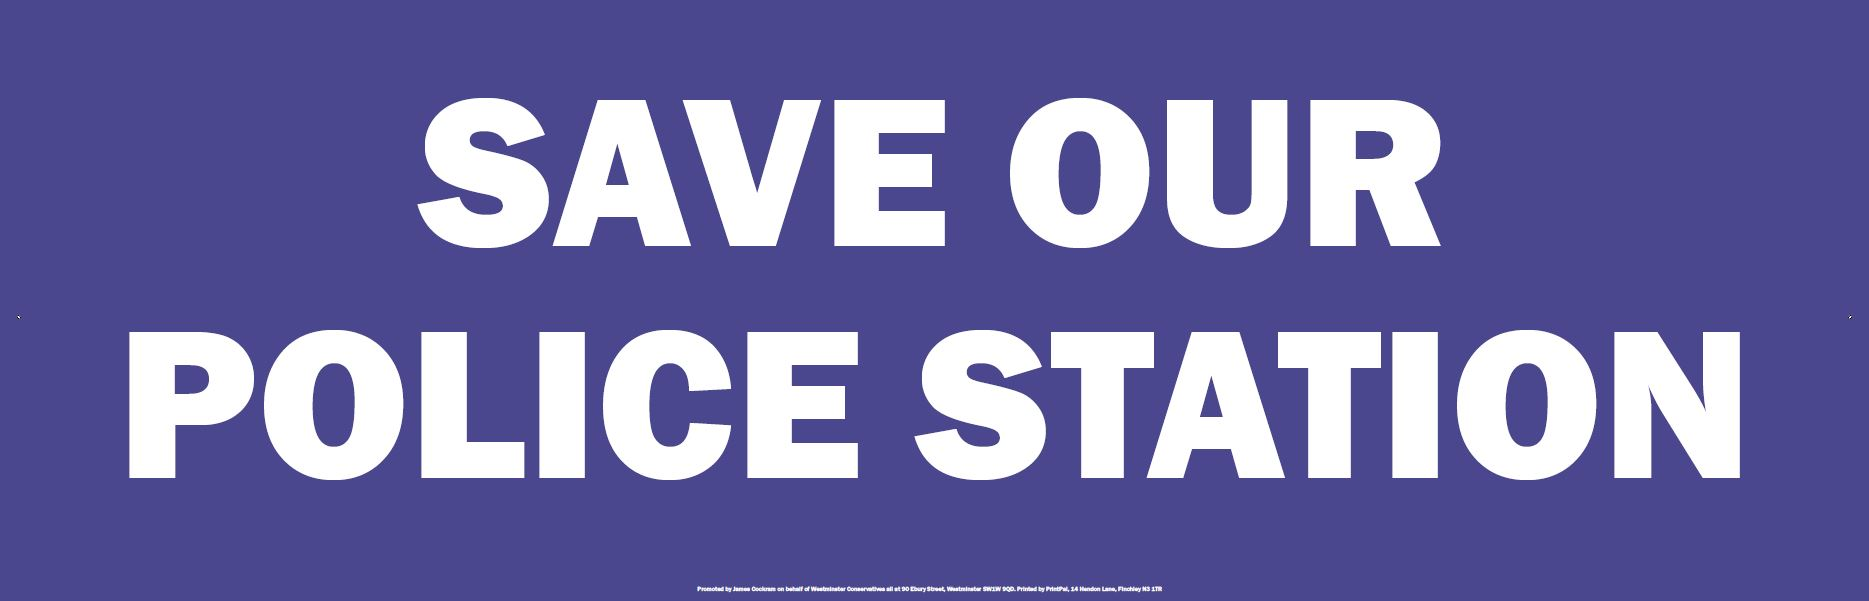 save our police station